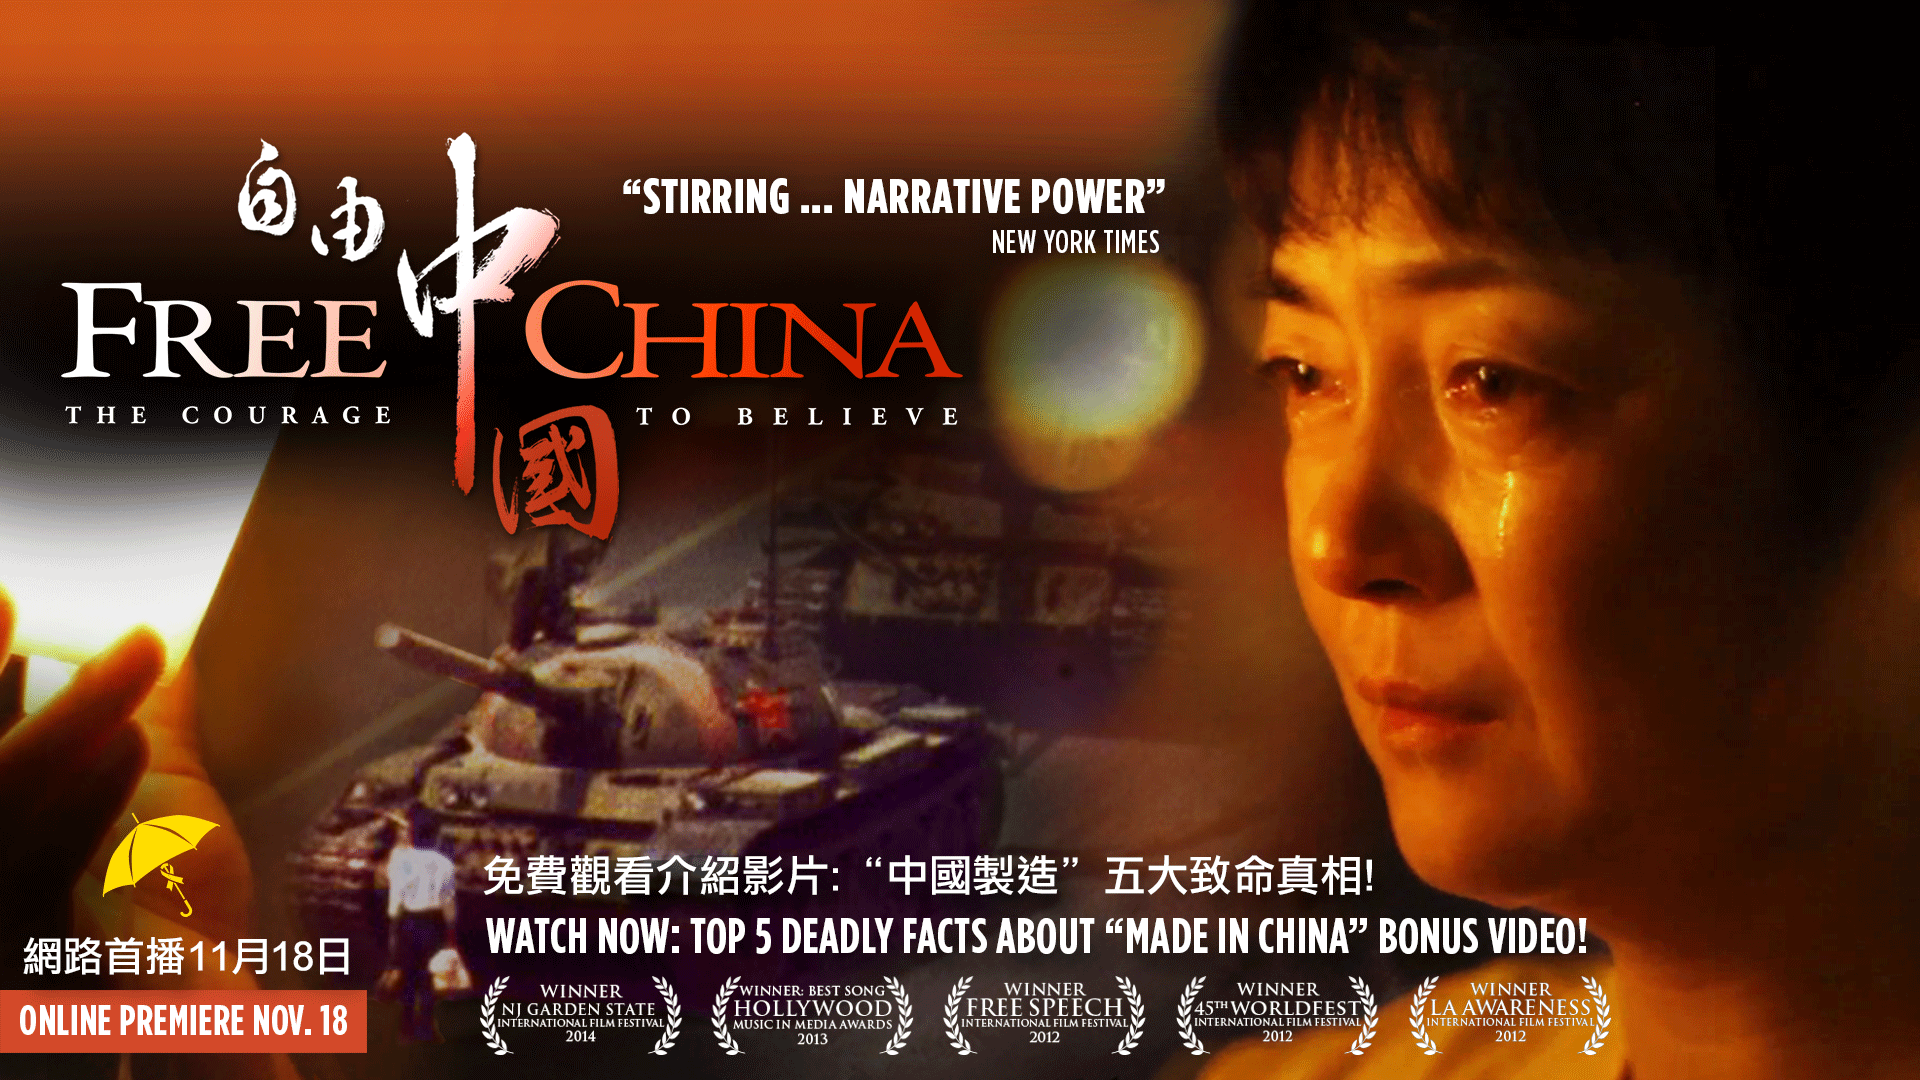 Trailers | FREE CHINA: The Courage to Believe